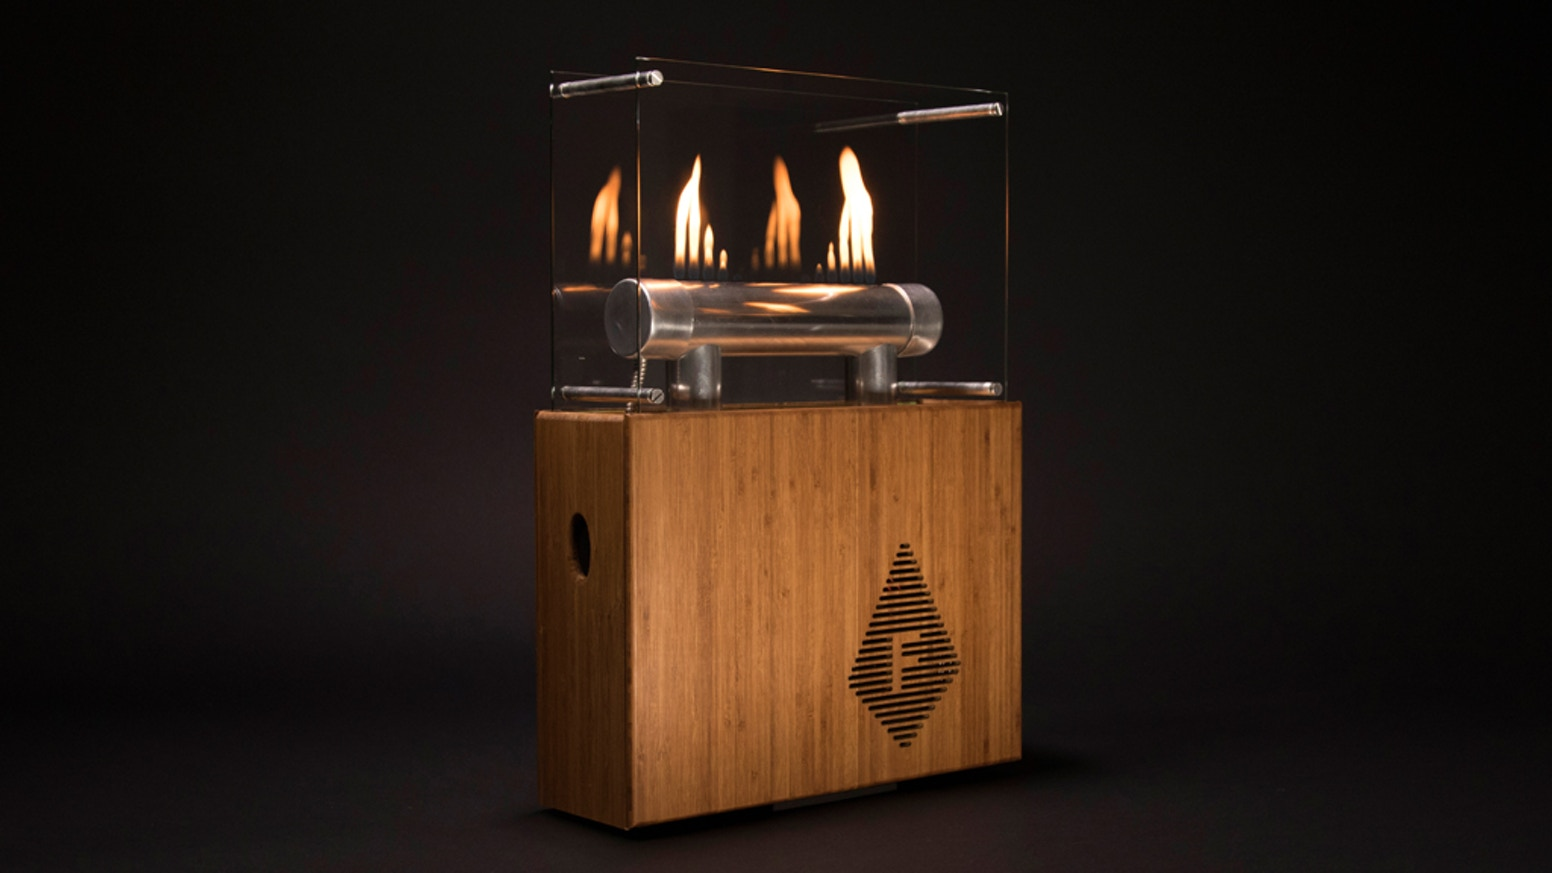 The Fireside Audiobox is a beautifully crafted Bluetooth-enabled audio player with flames that respond to your music.